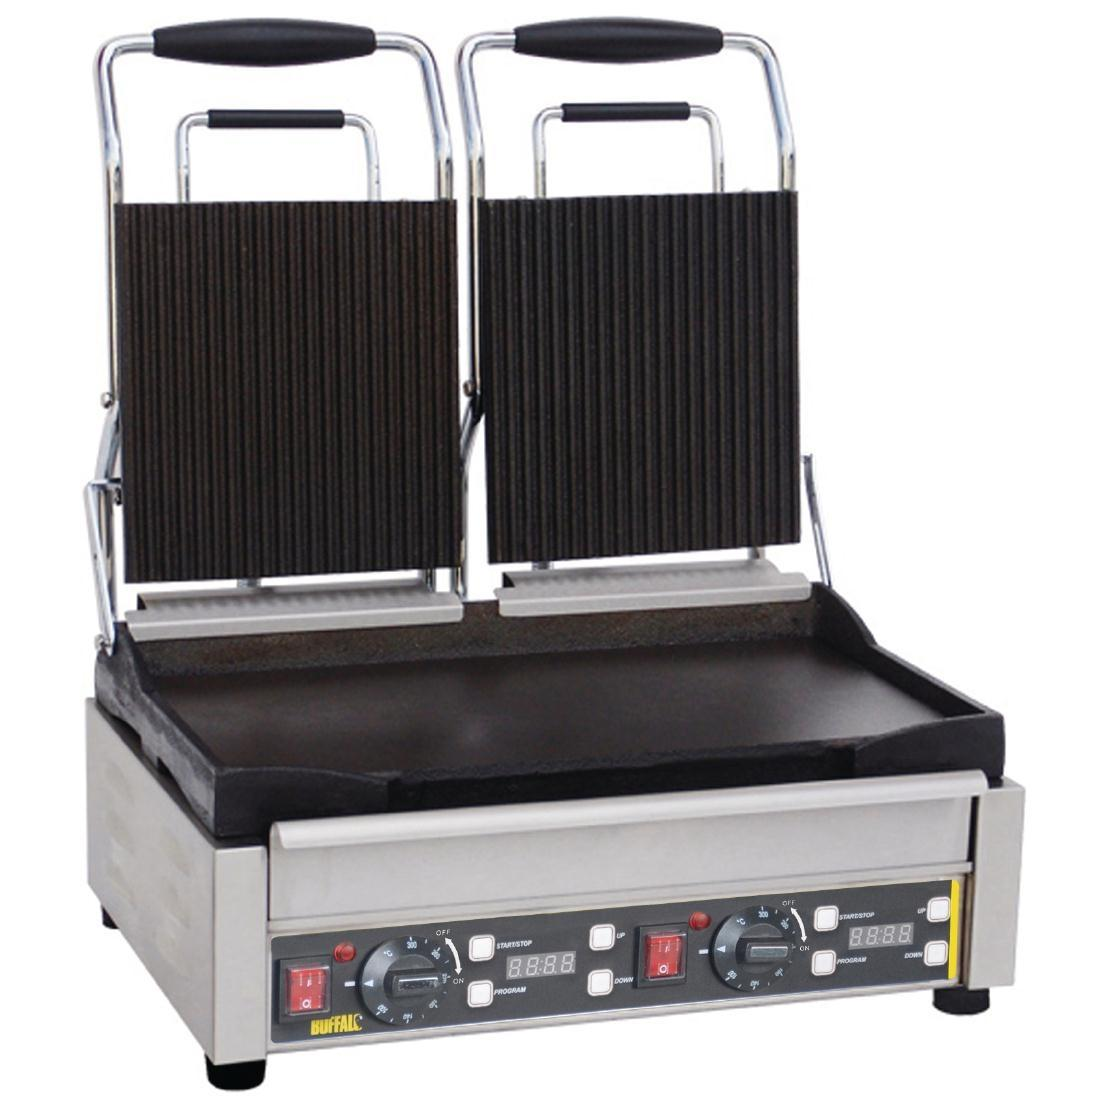 L554 - Buffalo Double Contact Grill Ribbed Top - L554